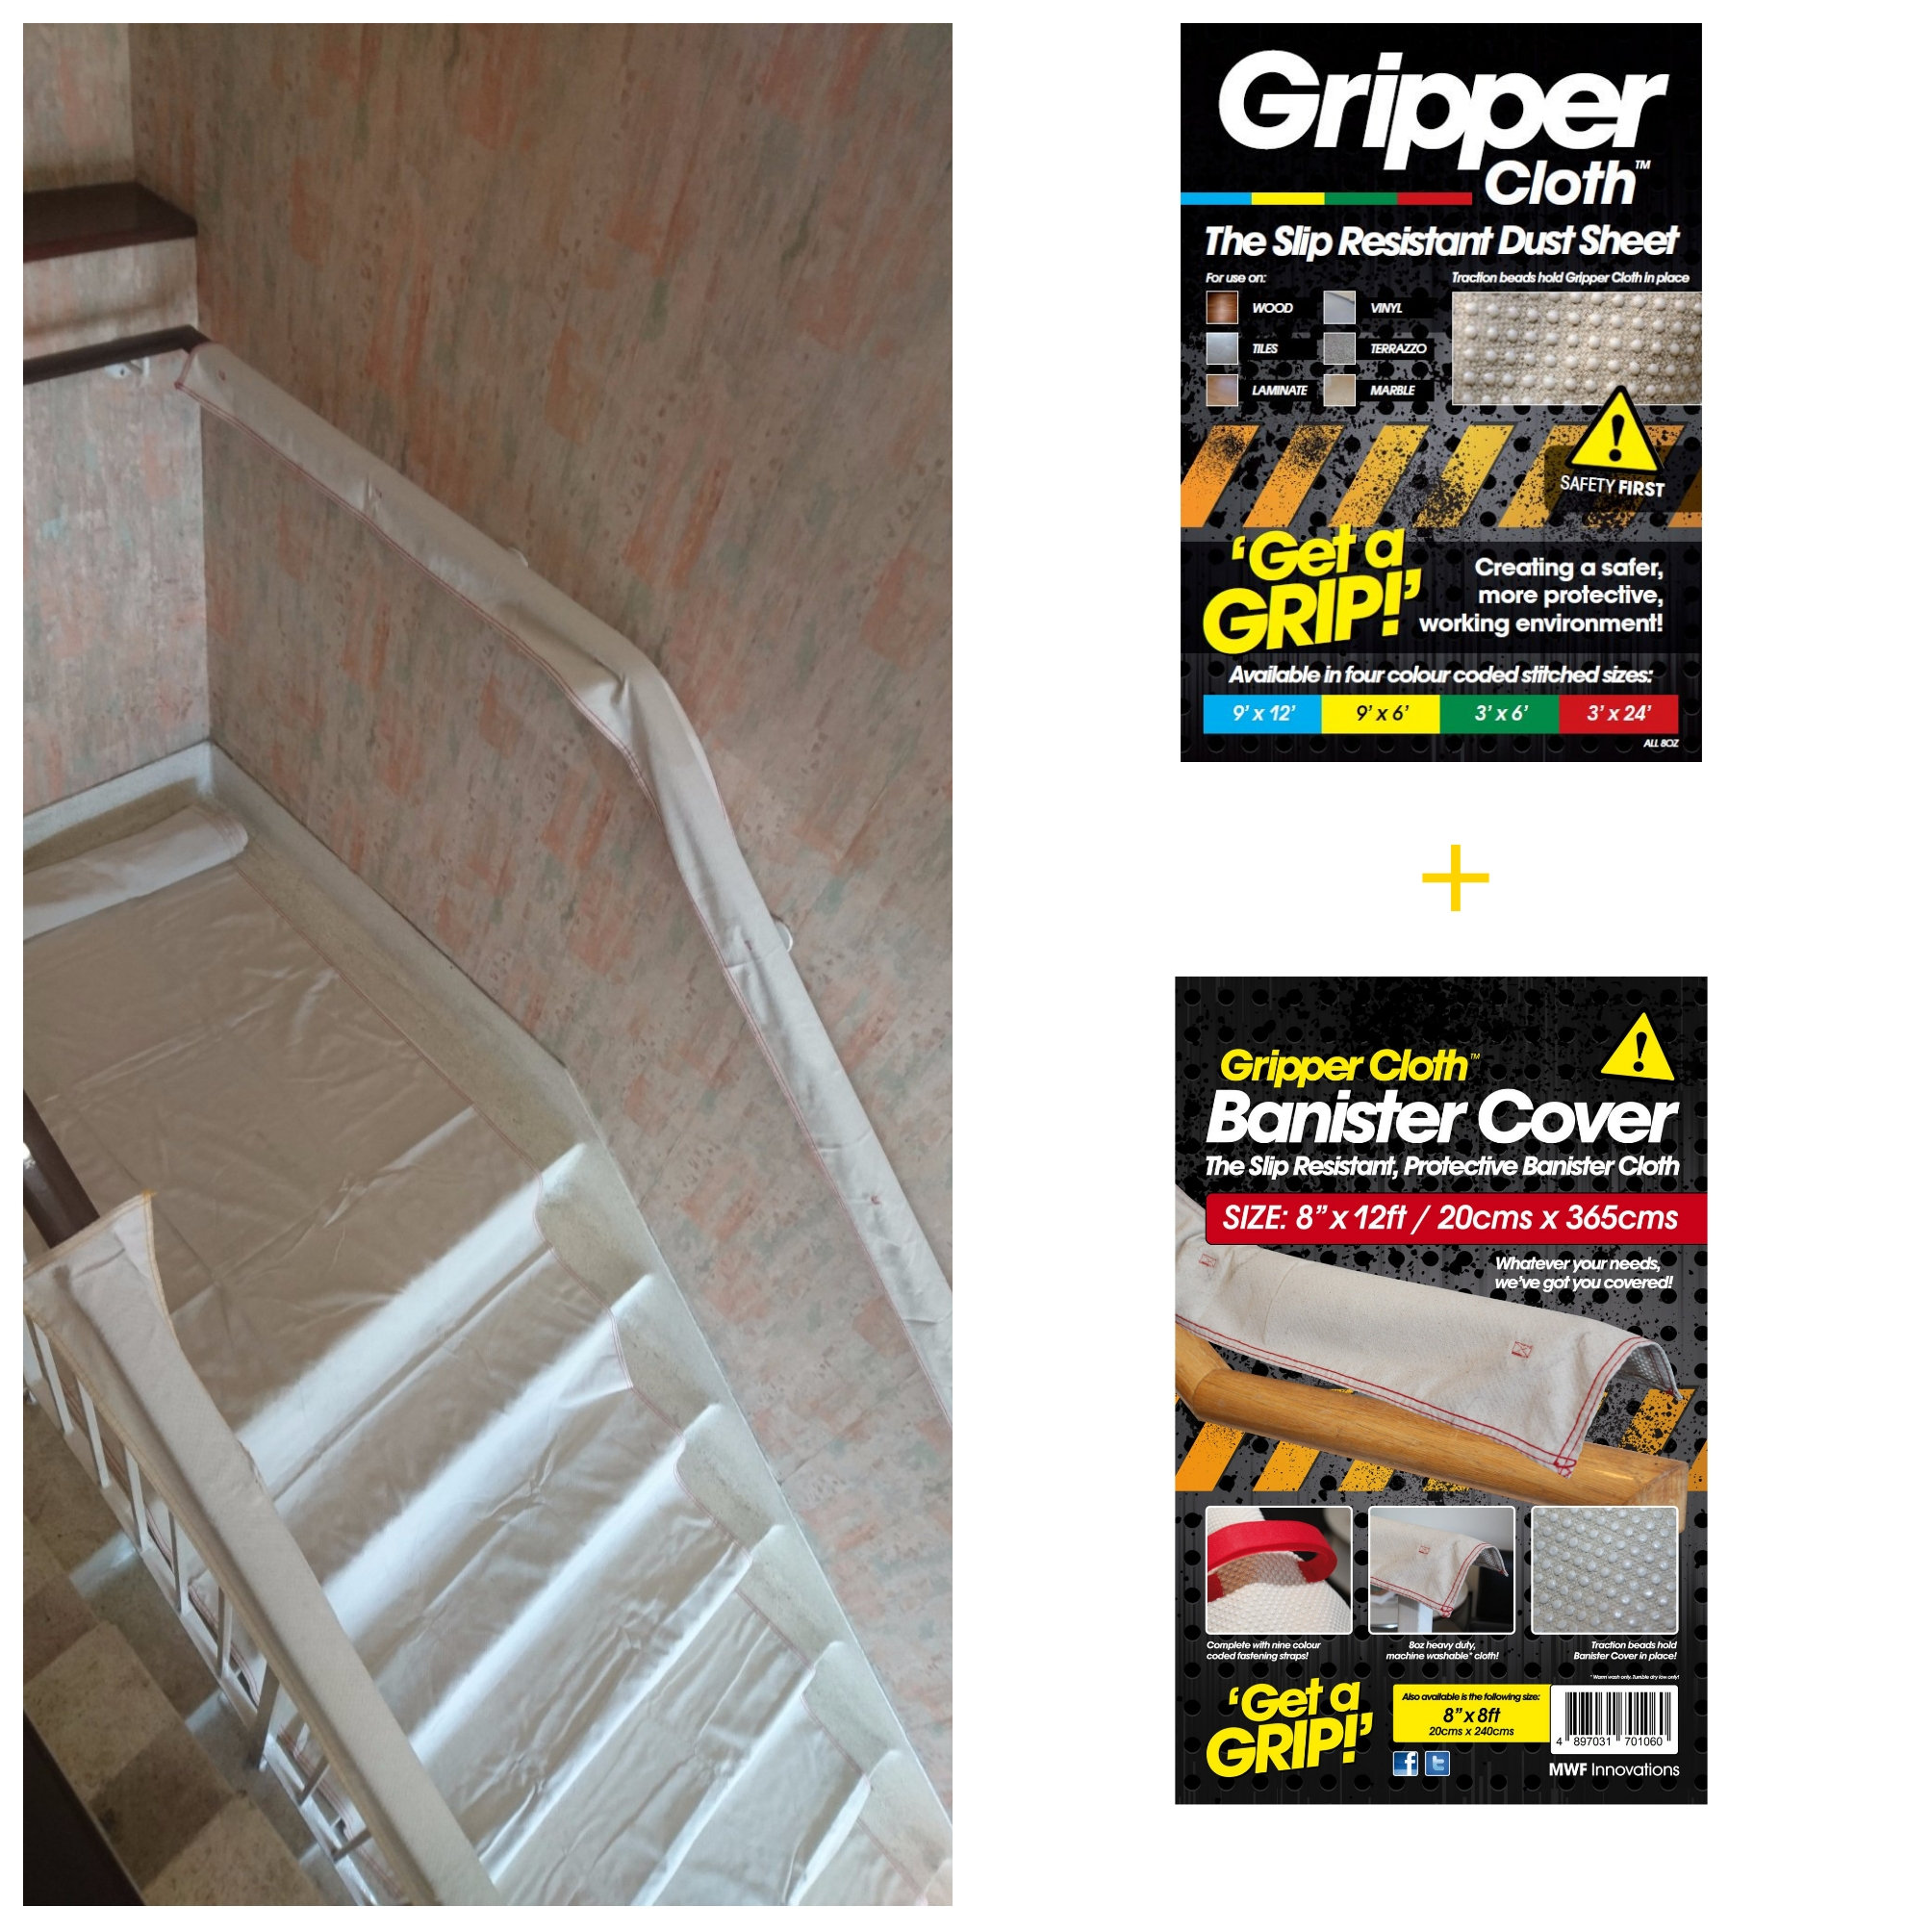 Gripper Cloth Amp Banister Cover Dust Sheet Staircase Bundle